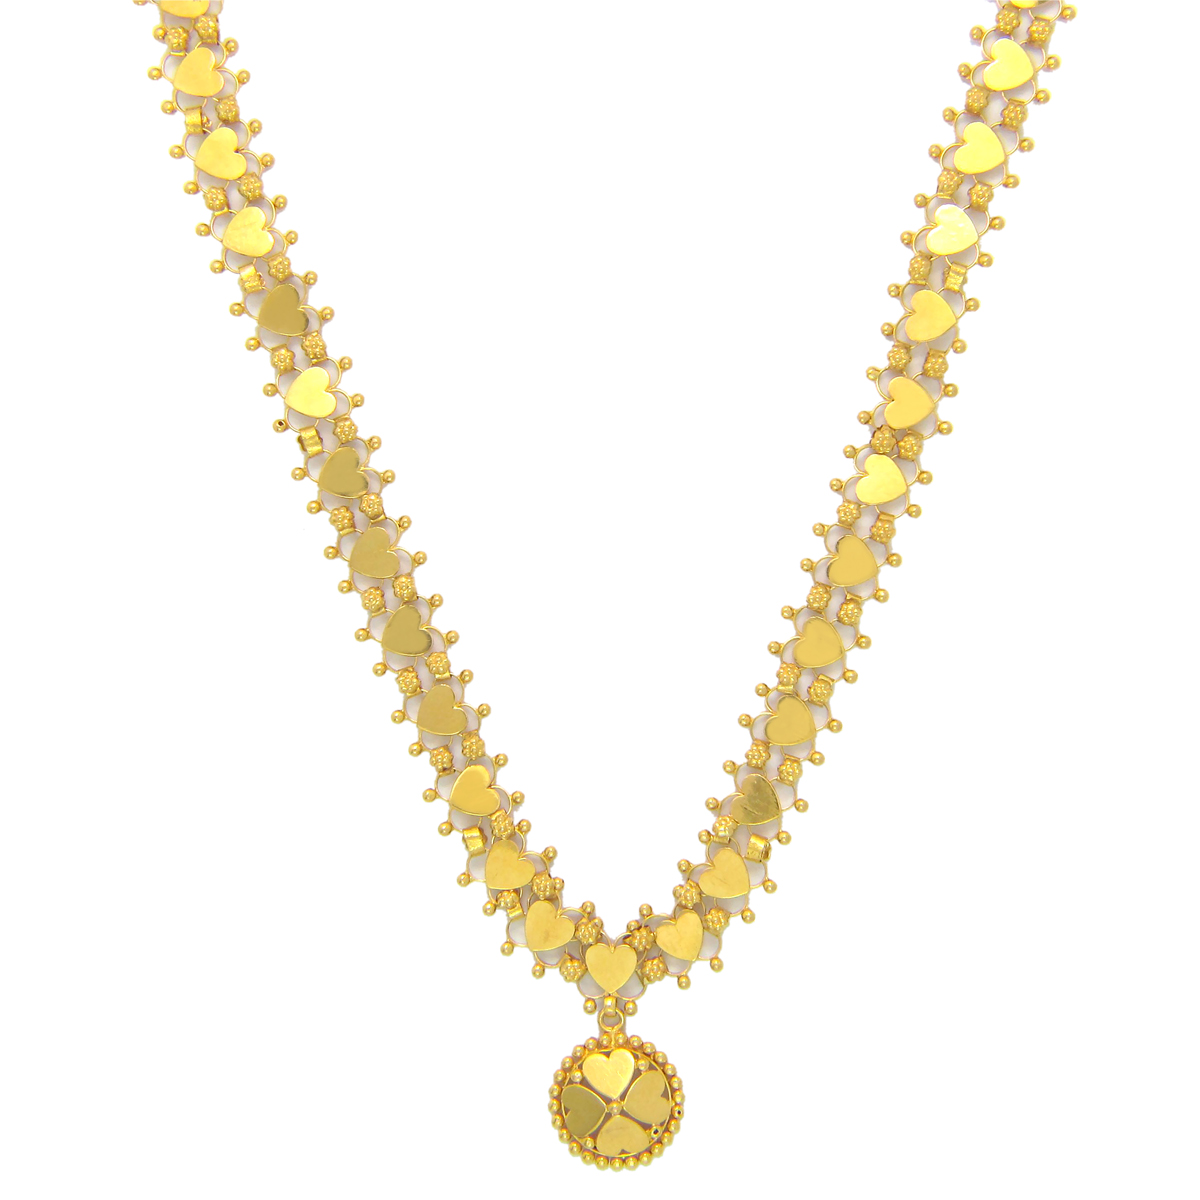 Popley 22Kt Gold Bandhan Necklace - A19